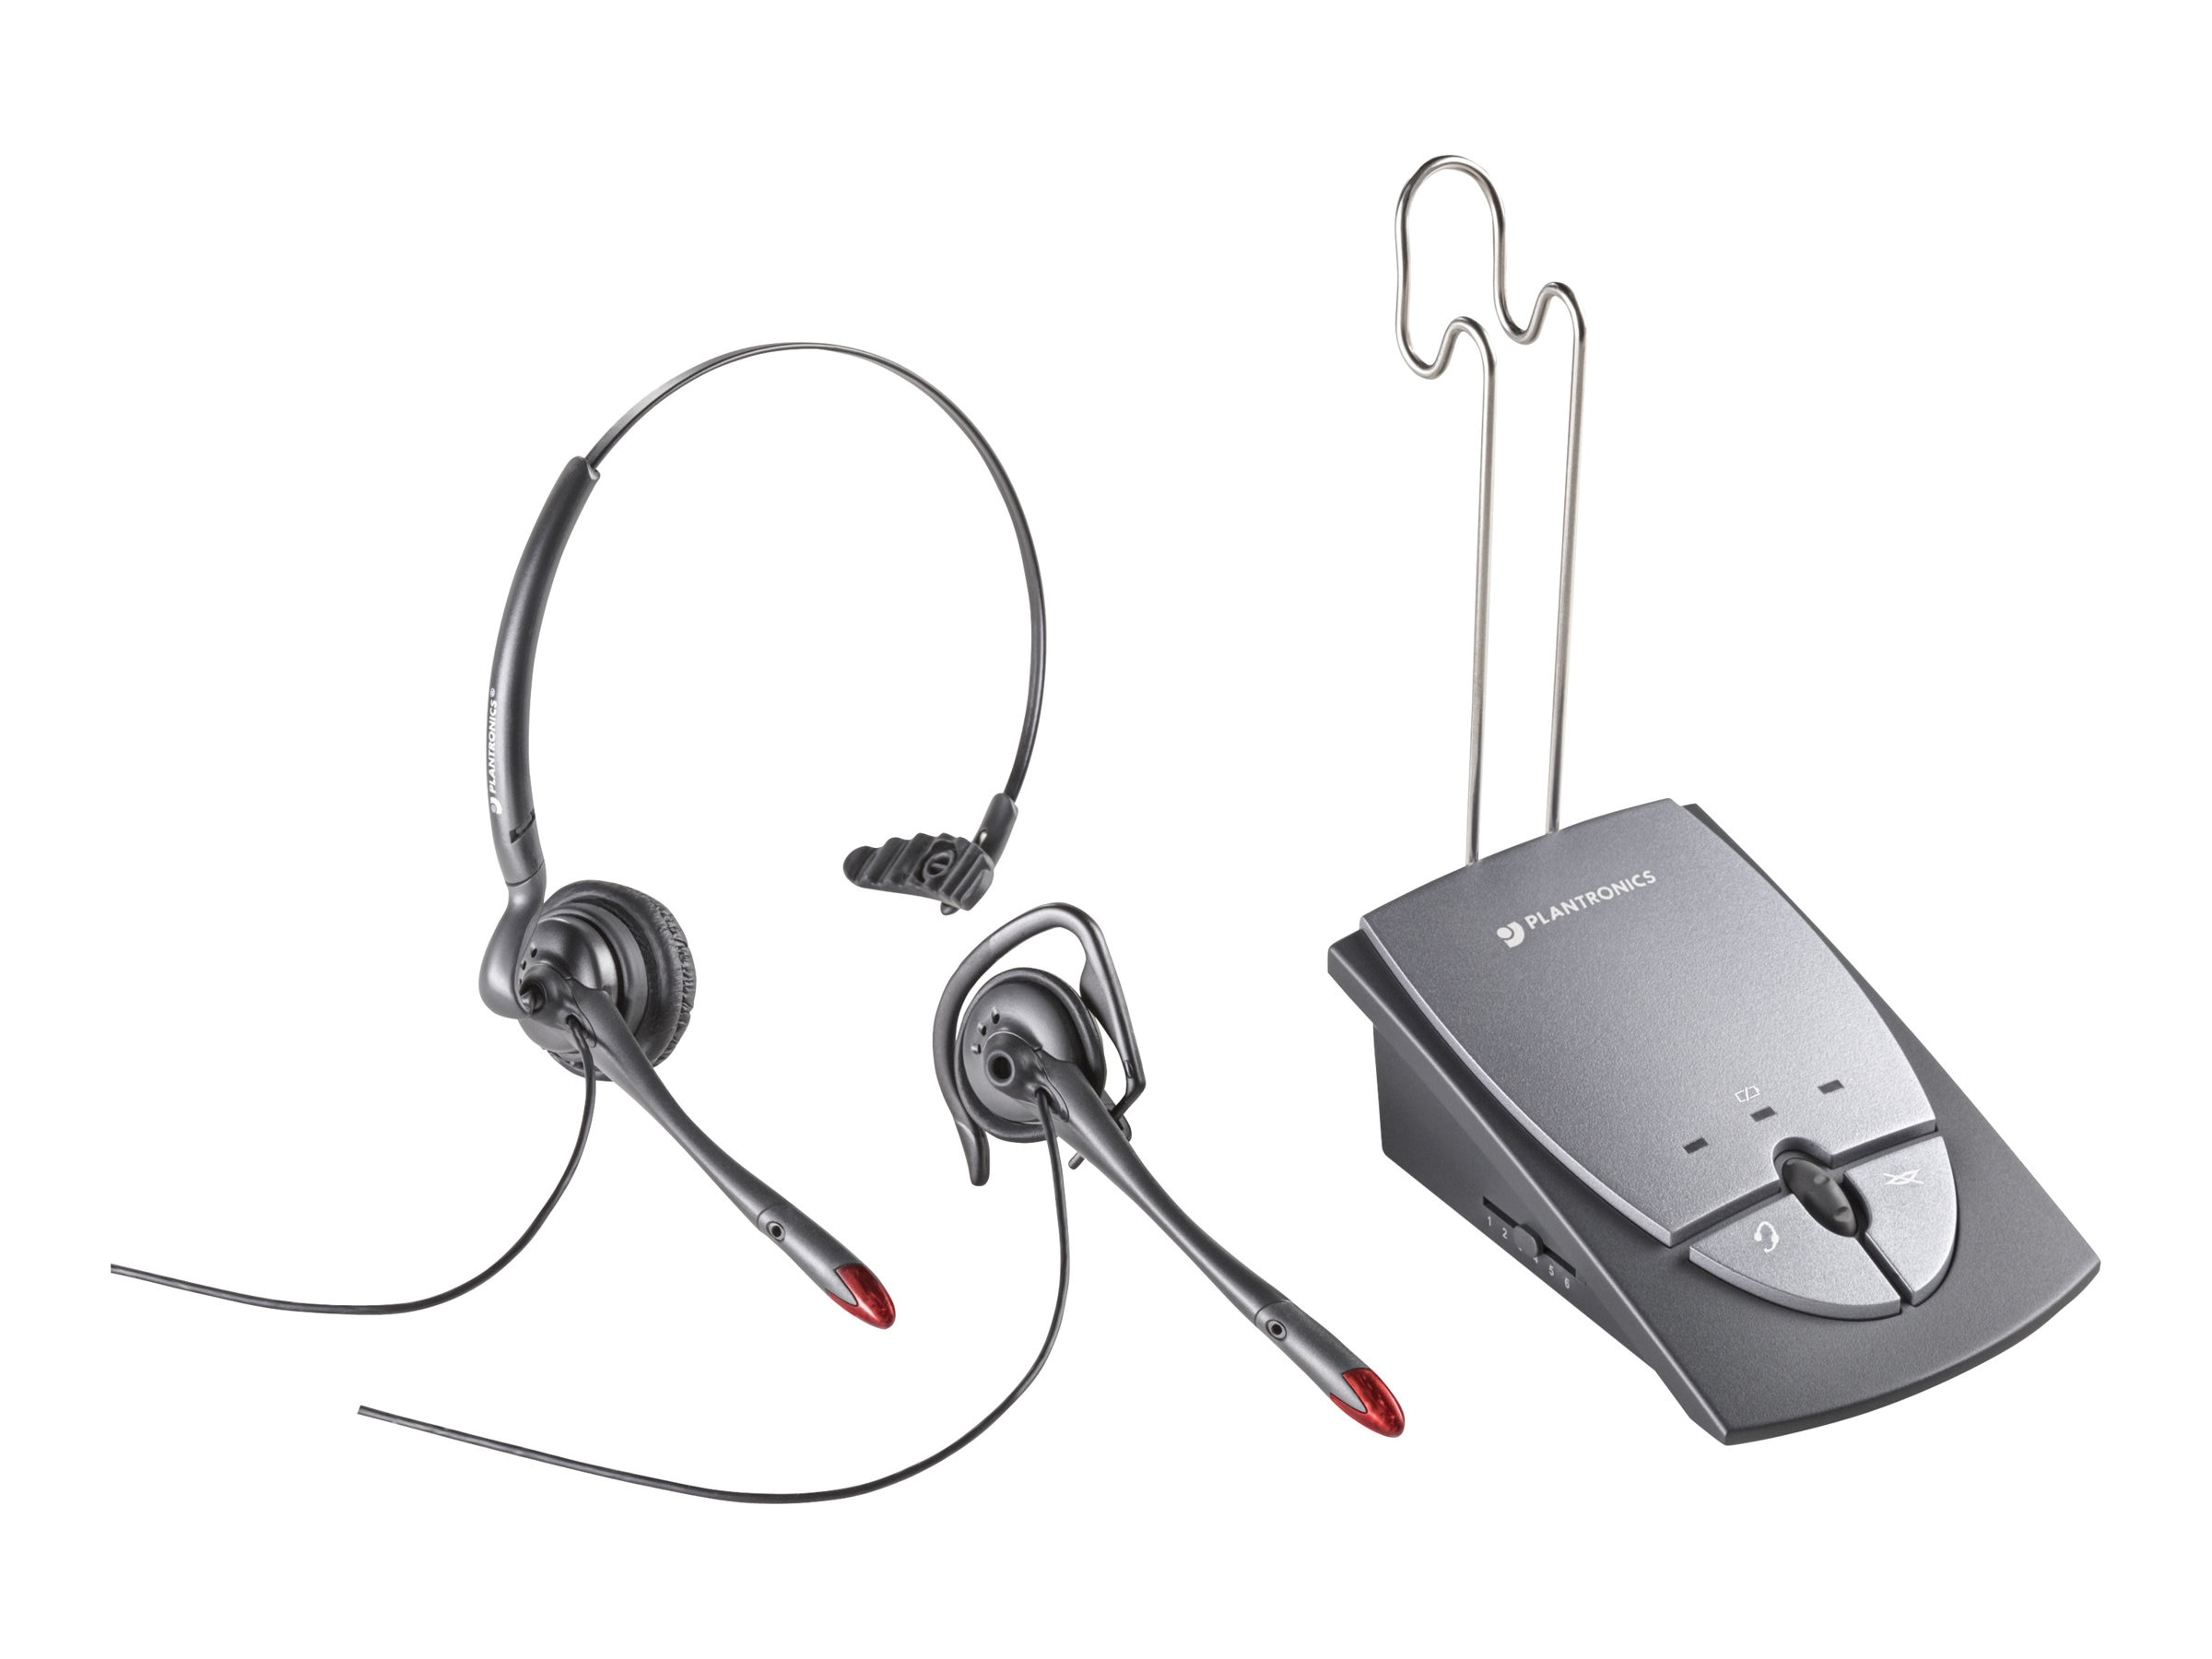 Plantronics S12 Telephone Headset System, S12